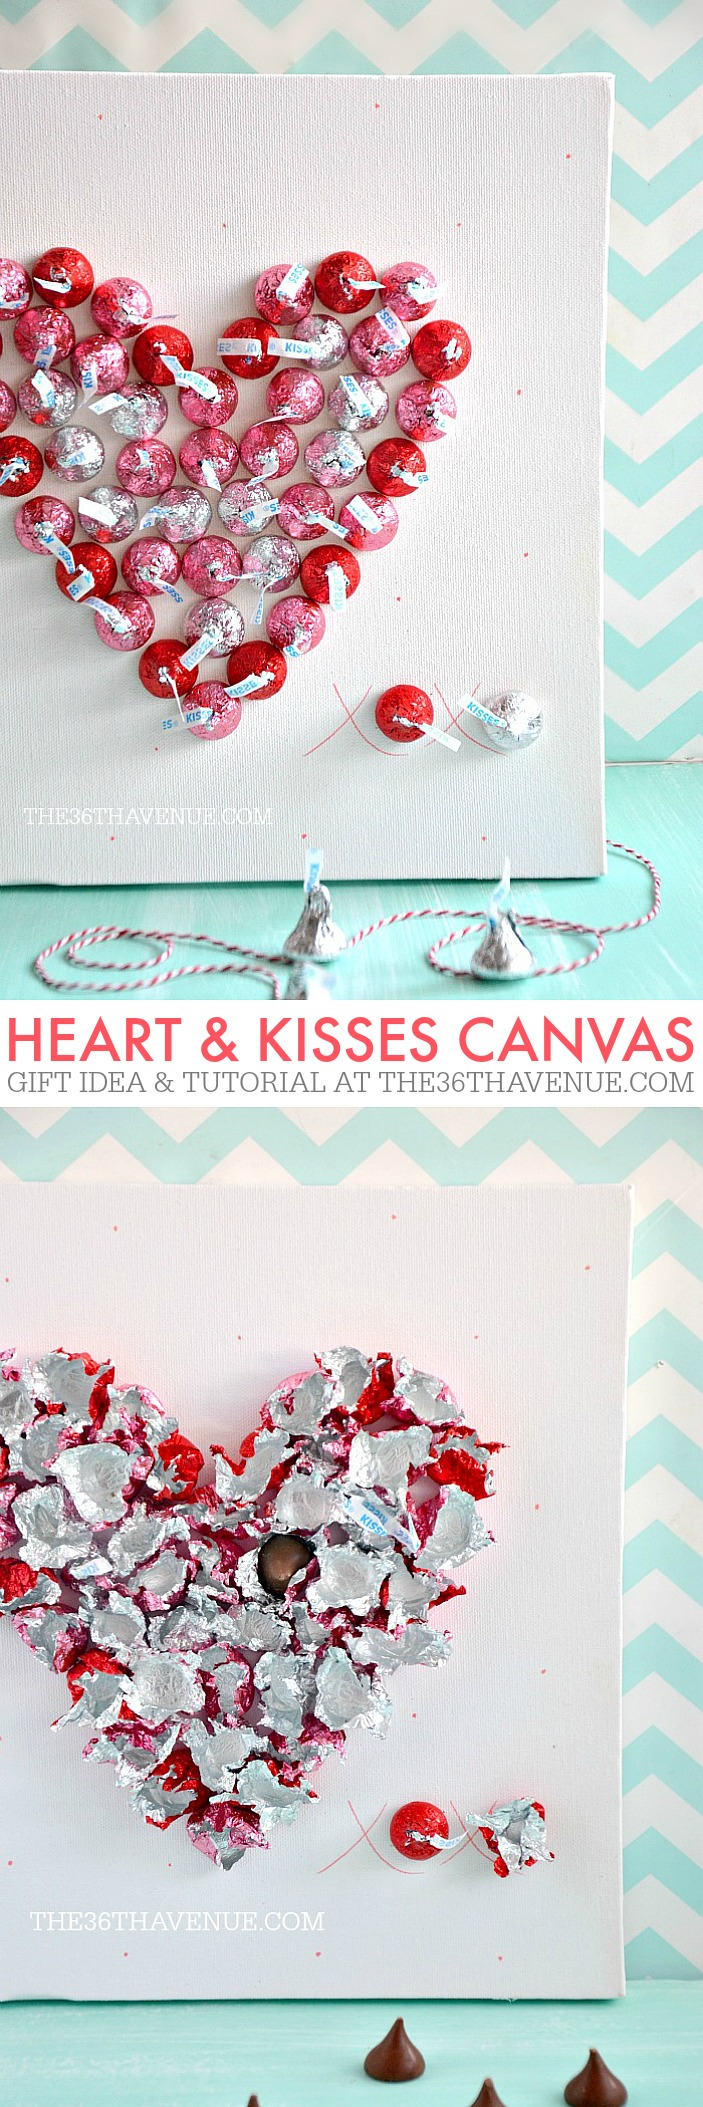 Valentine Gifts - Heart & Kisses Canvas - the36thavenue.com